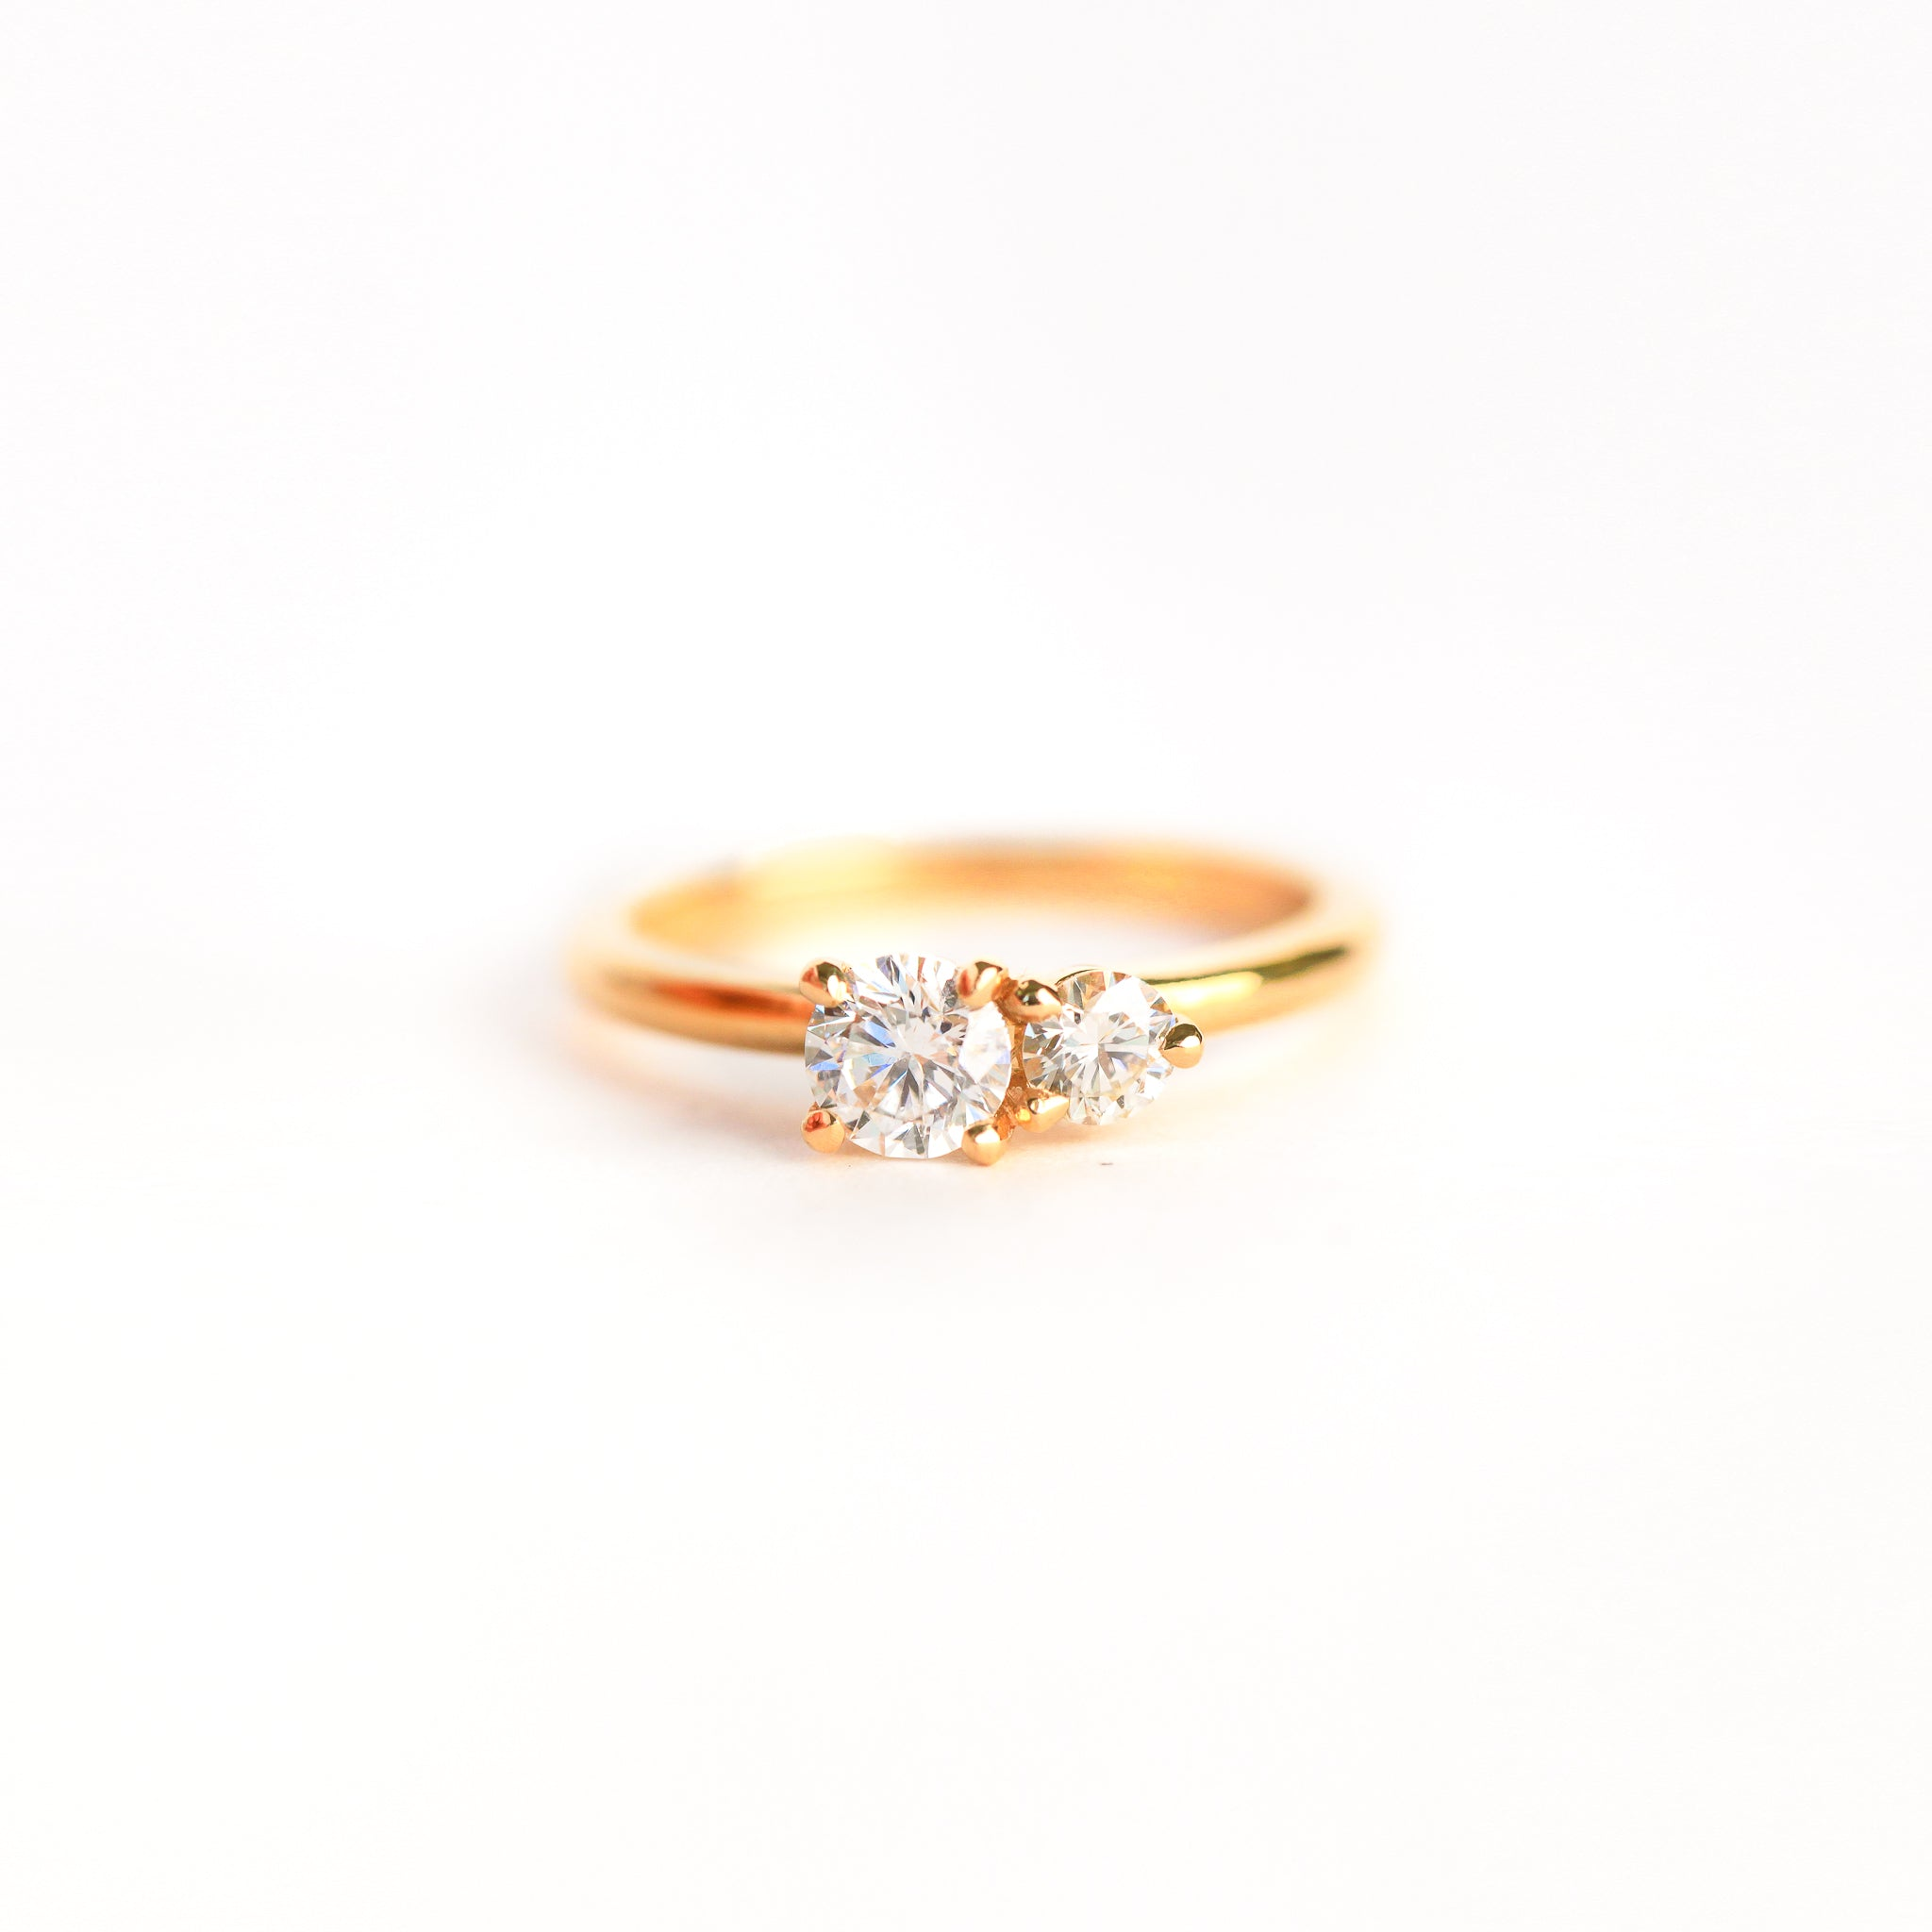 Handmade in Melbourne Two Stone Diamond Engagement Ring in 18ct Yellow Gold